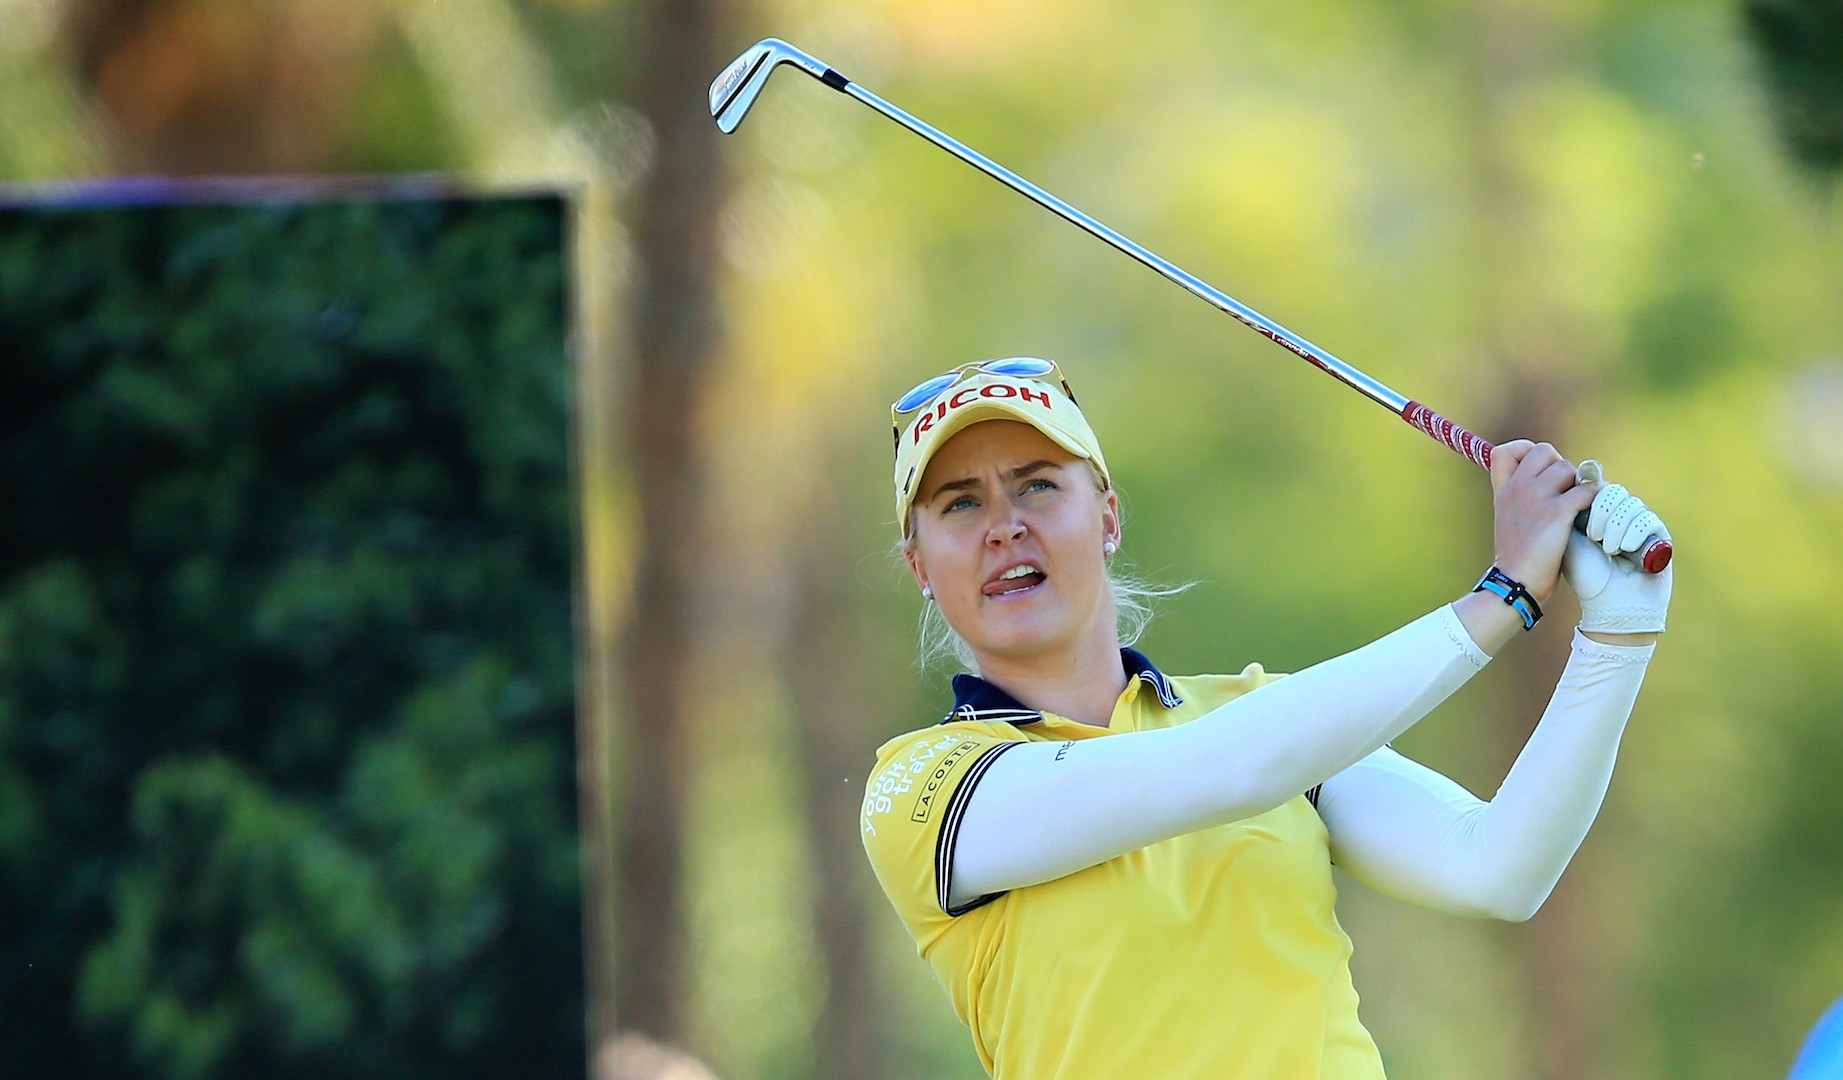 Lexi Leads at ANA Inspiration